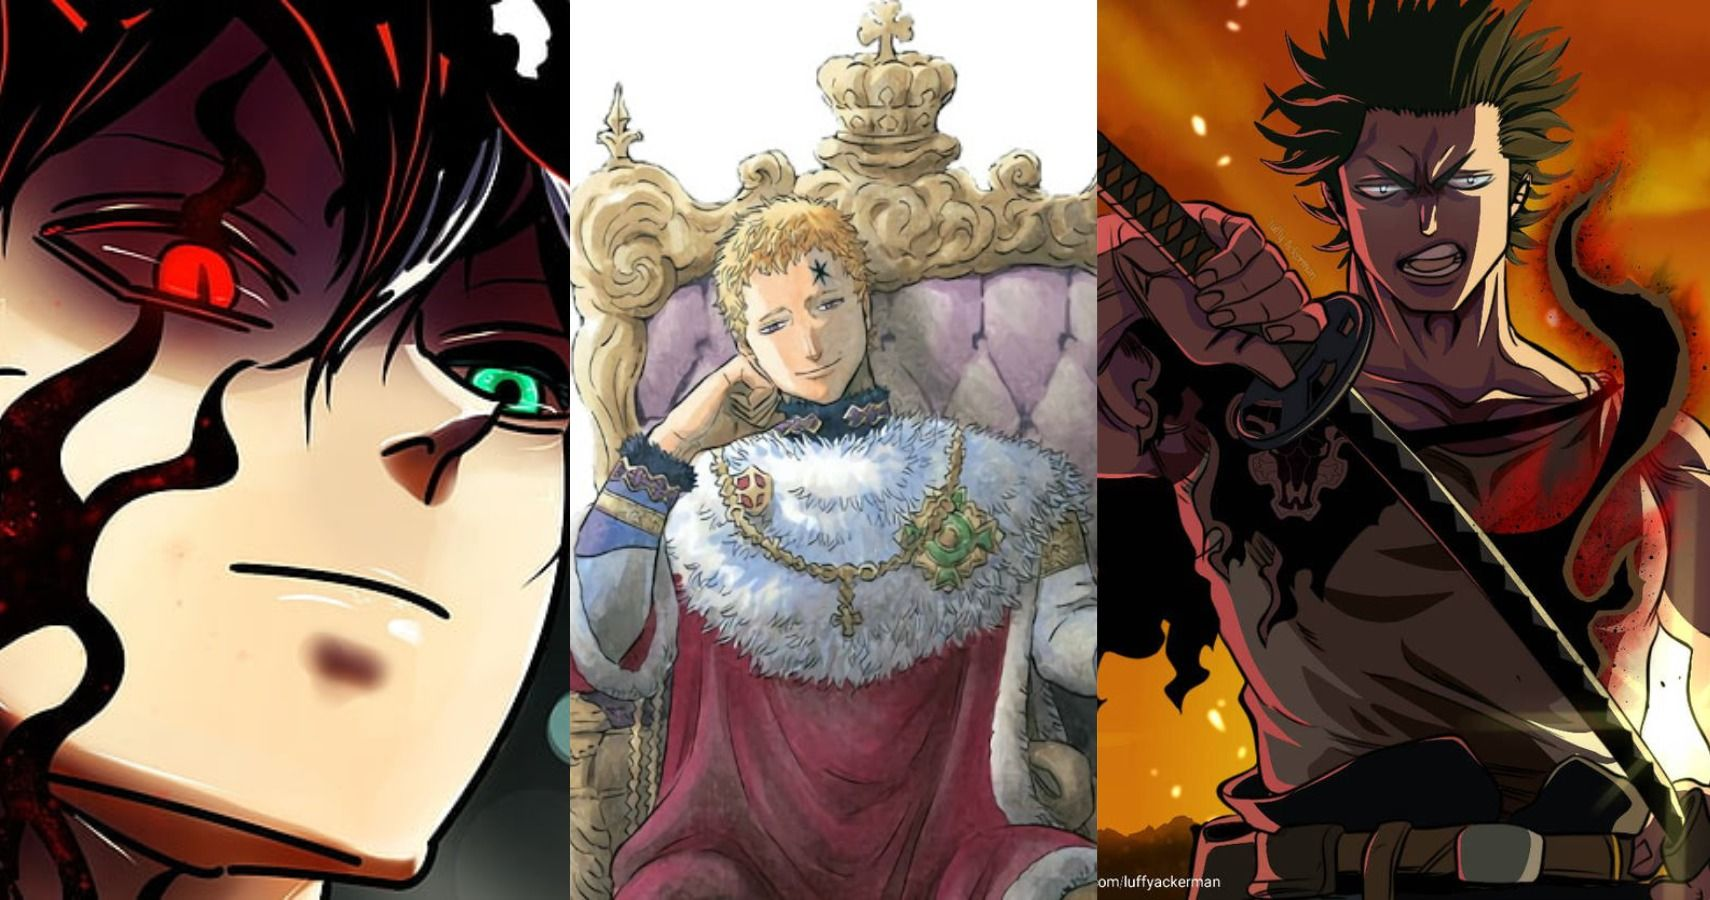 Black Clover Top 10 Contenders For The Title Of The Wizard King Ranked Winter 2018jangan lupa like dan subscribenya :))black clover episode 15 sub indo 1080p hdblack clover episode 16 sub. black clover top 10 contenders for the